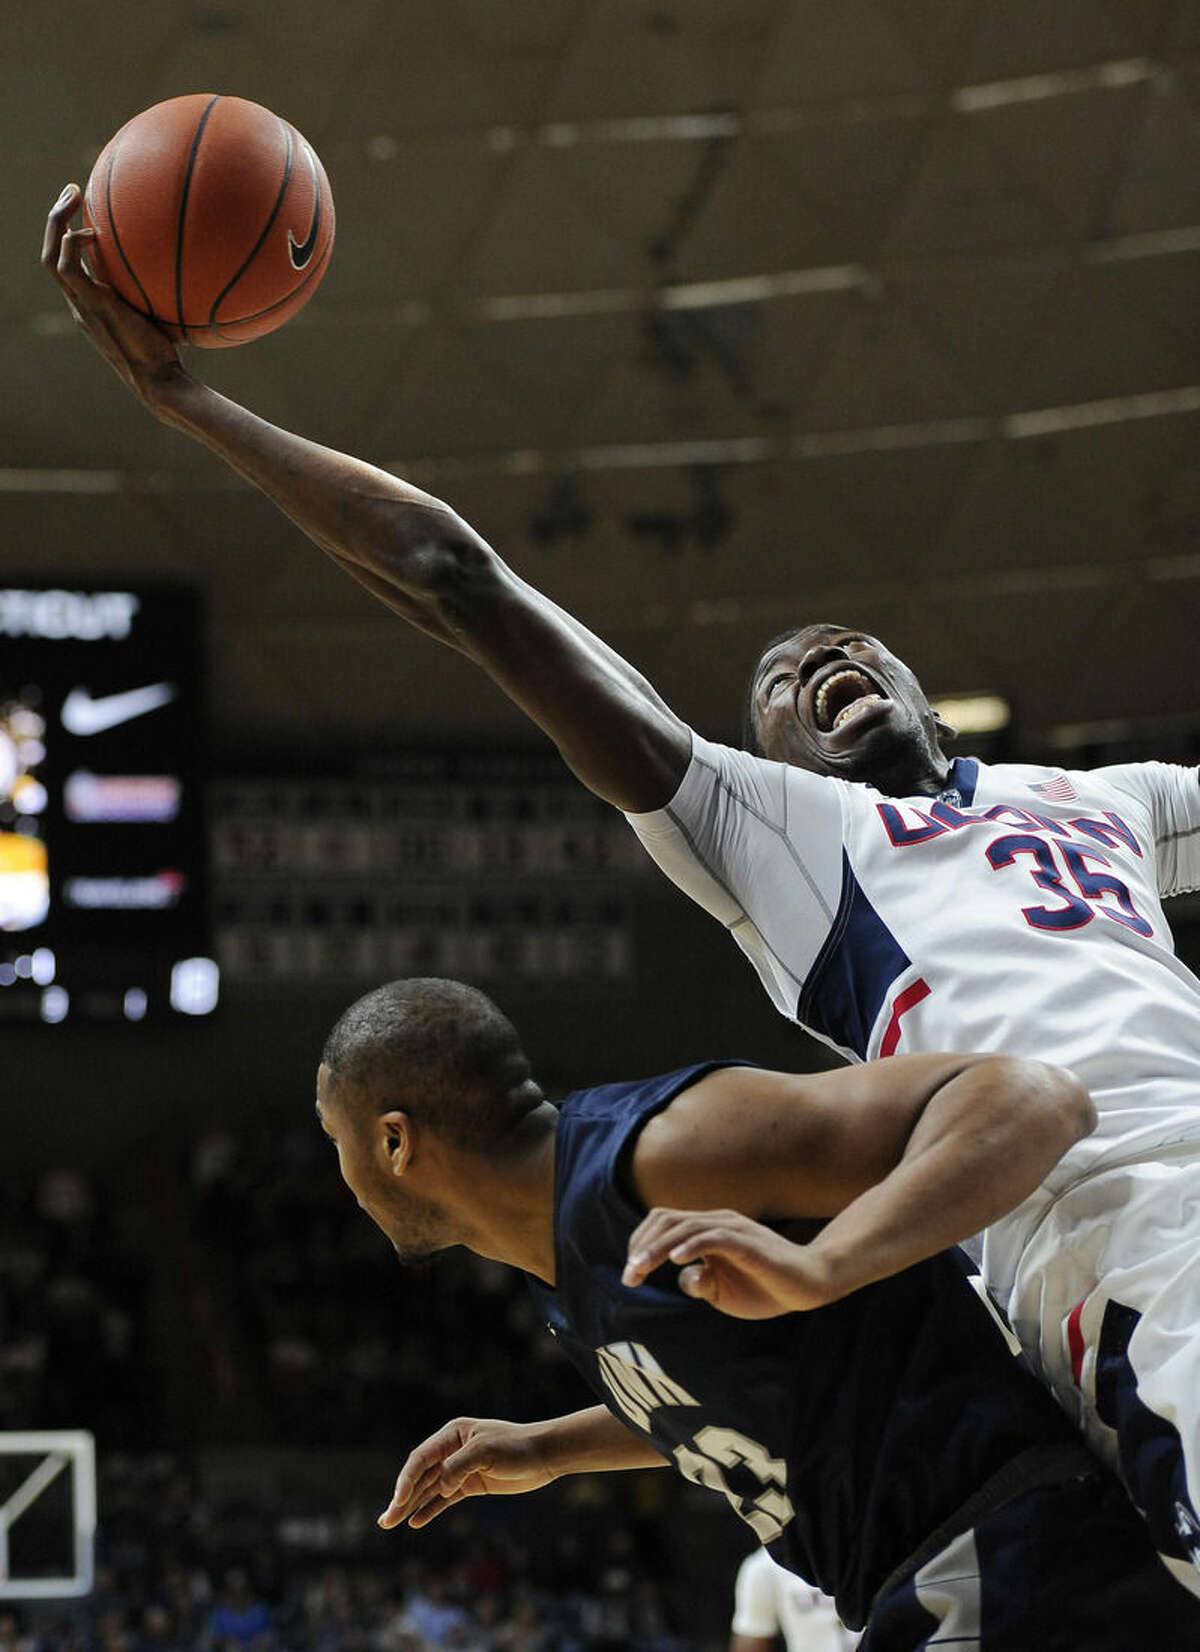 Connecticut's Amida Brimah grabs an offensive rebound over New Hampshire's Ronnel Jordan, left, in the first half of an NCAA college basketball game, Tuesday, Nov. 17, 2015, in Storrs, Conn. (AP Photo/Jessica Hill)